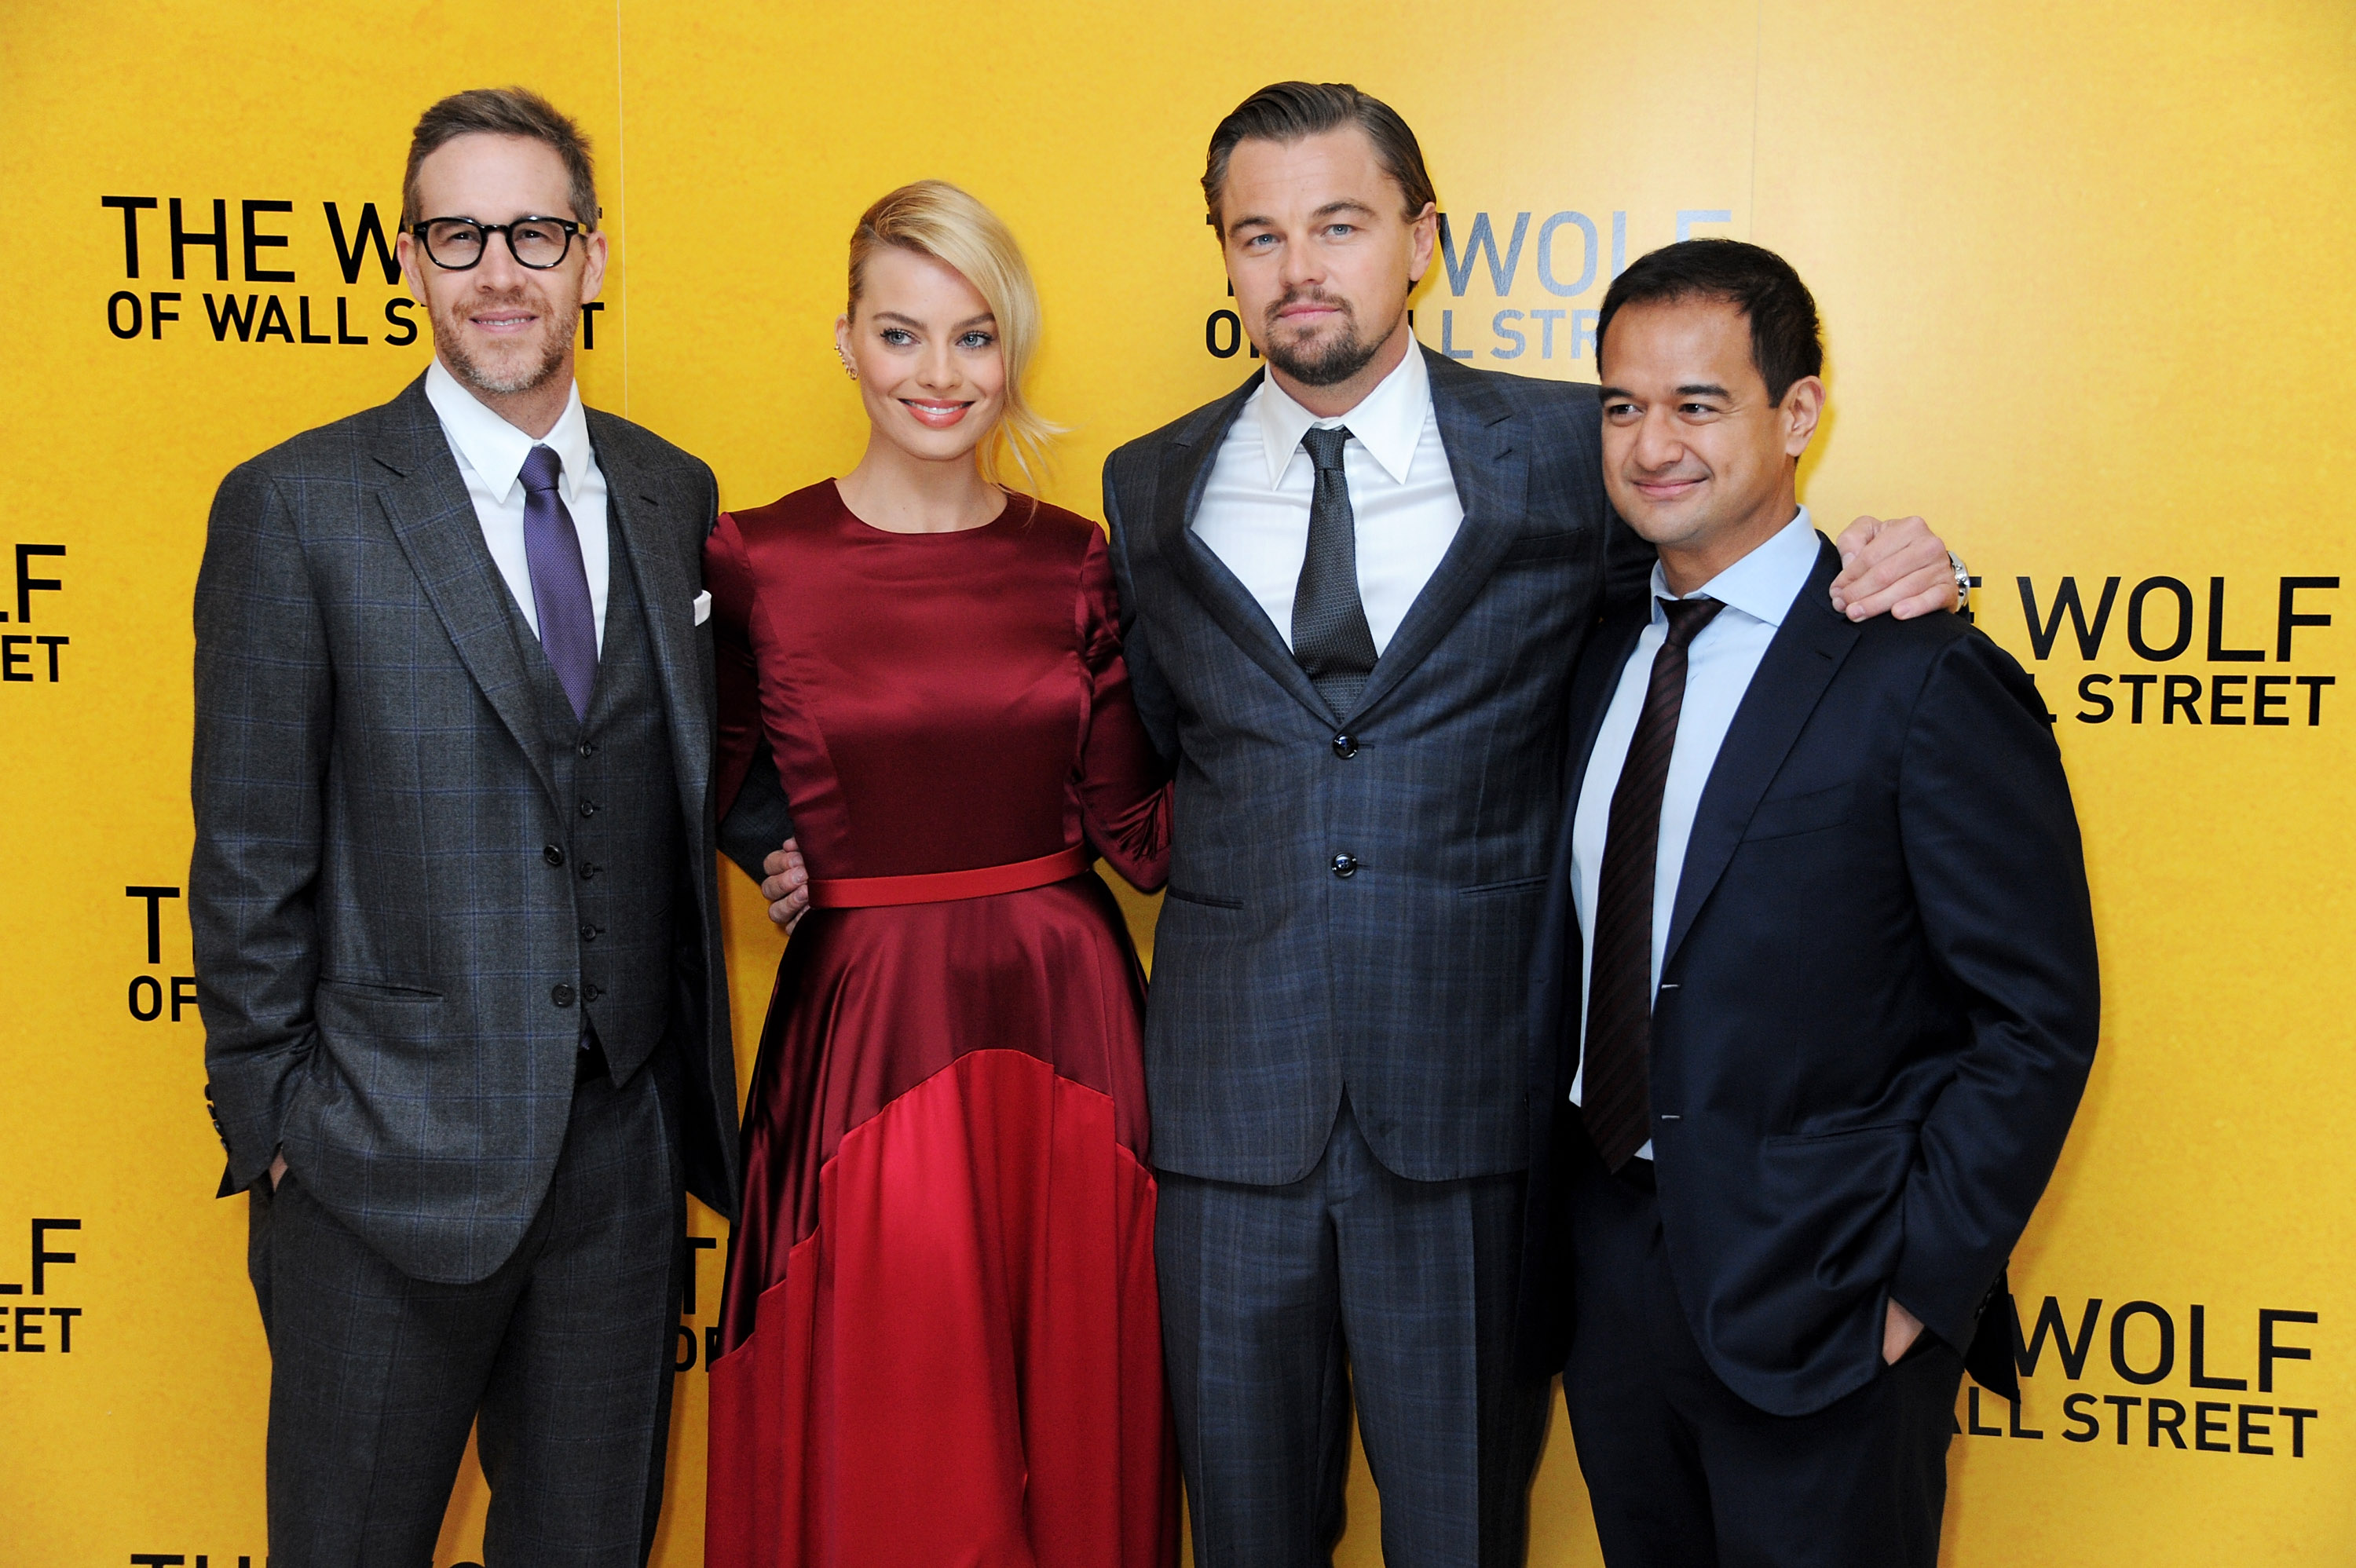 (R to L) Riza Aziz, Leonardo DiCaprio, Margot Robbie and producer Joey McFarland attend the U.K. Premiere of  The Wolf Of Wall Street  on Jan. 9, 2014 in London.